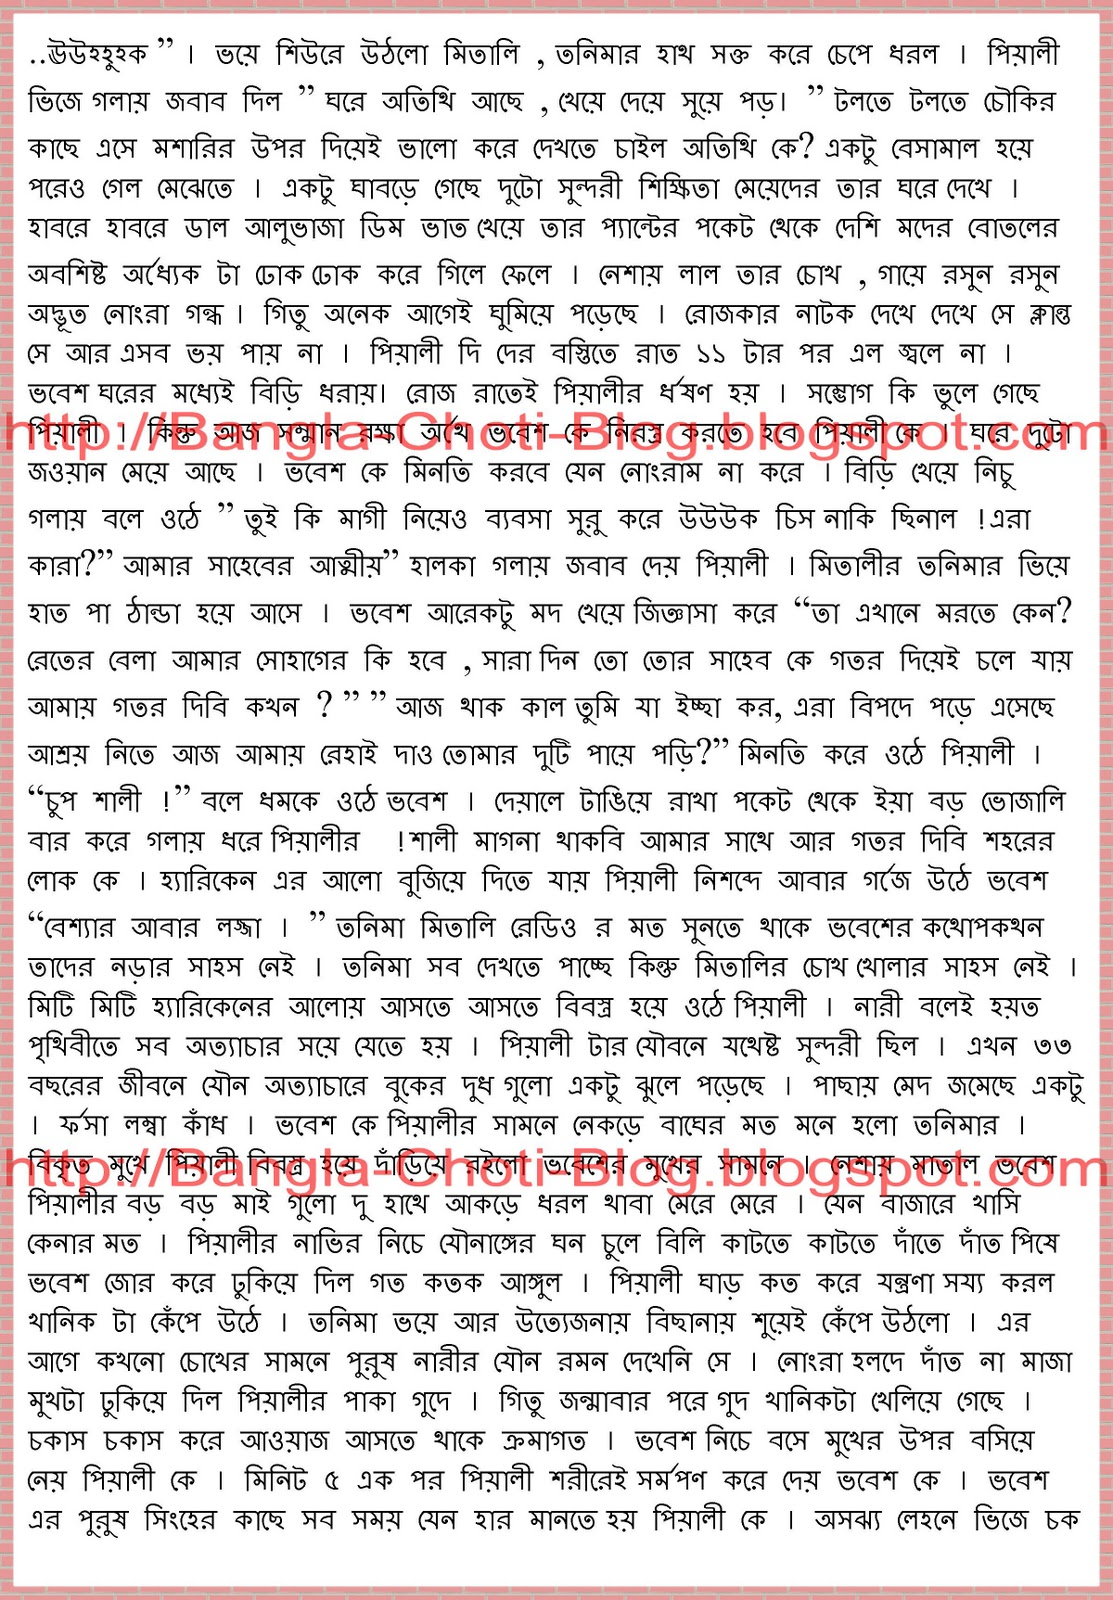 hsc bangla text book pdf